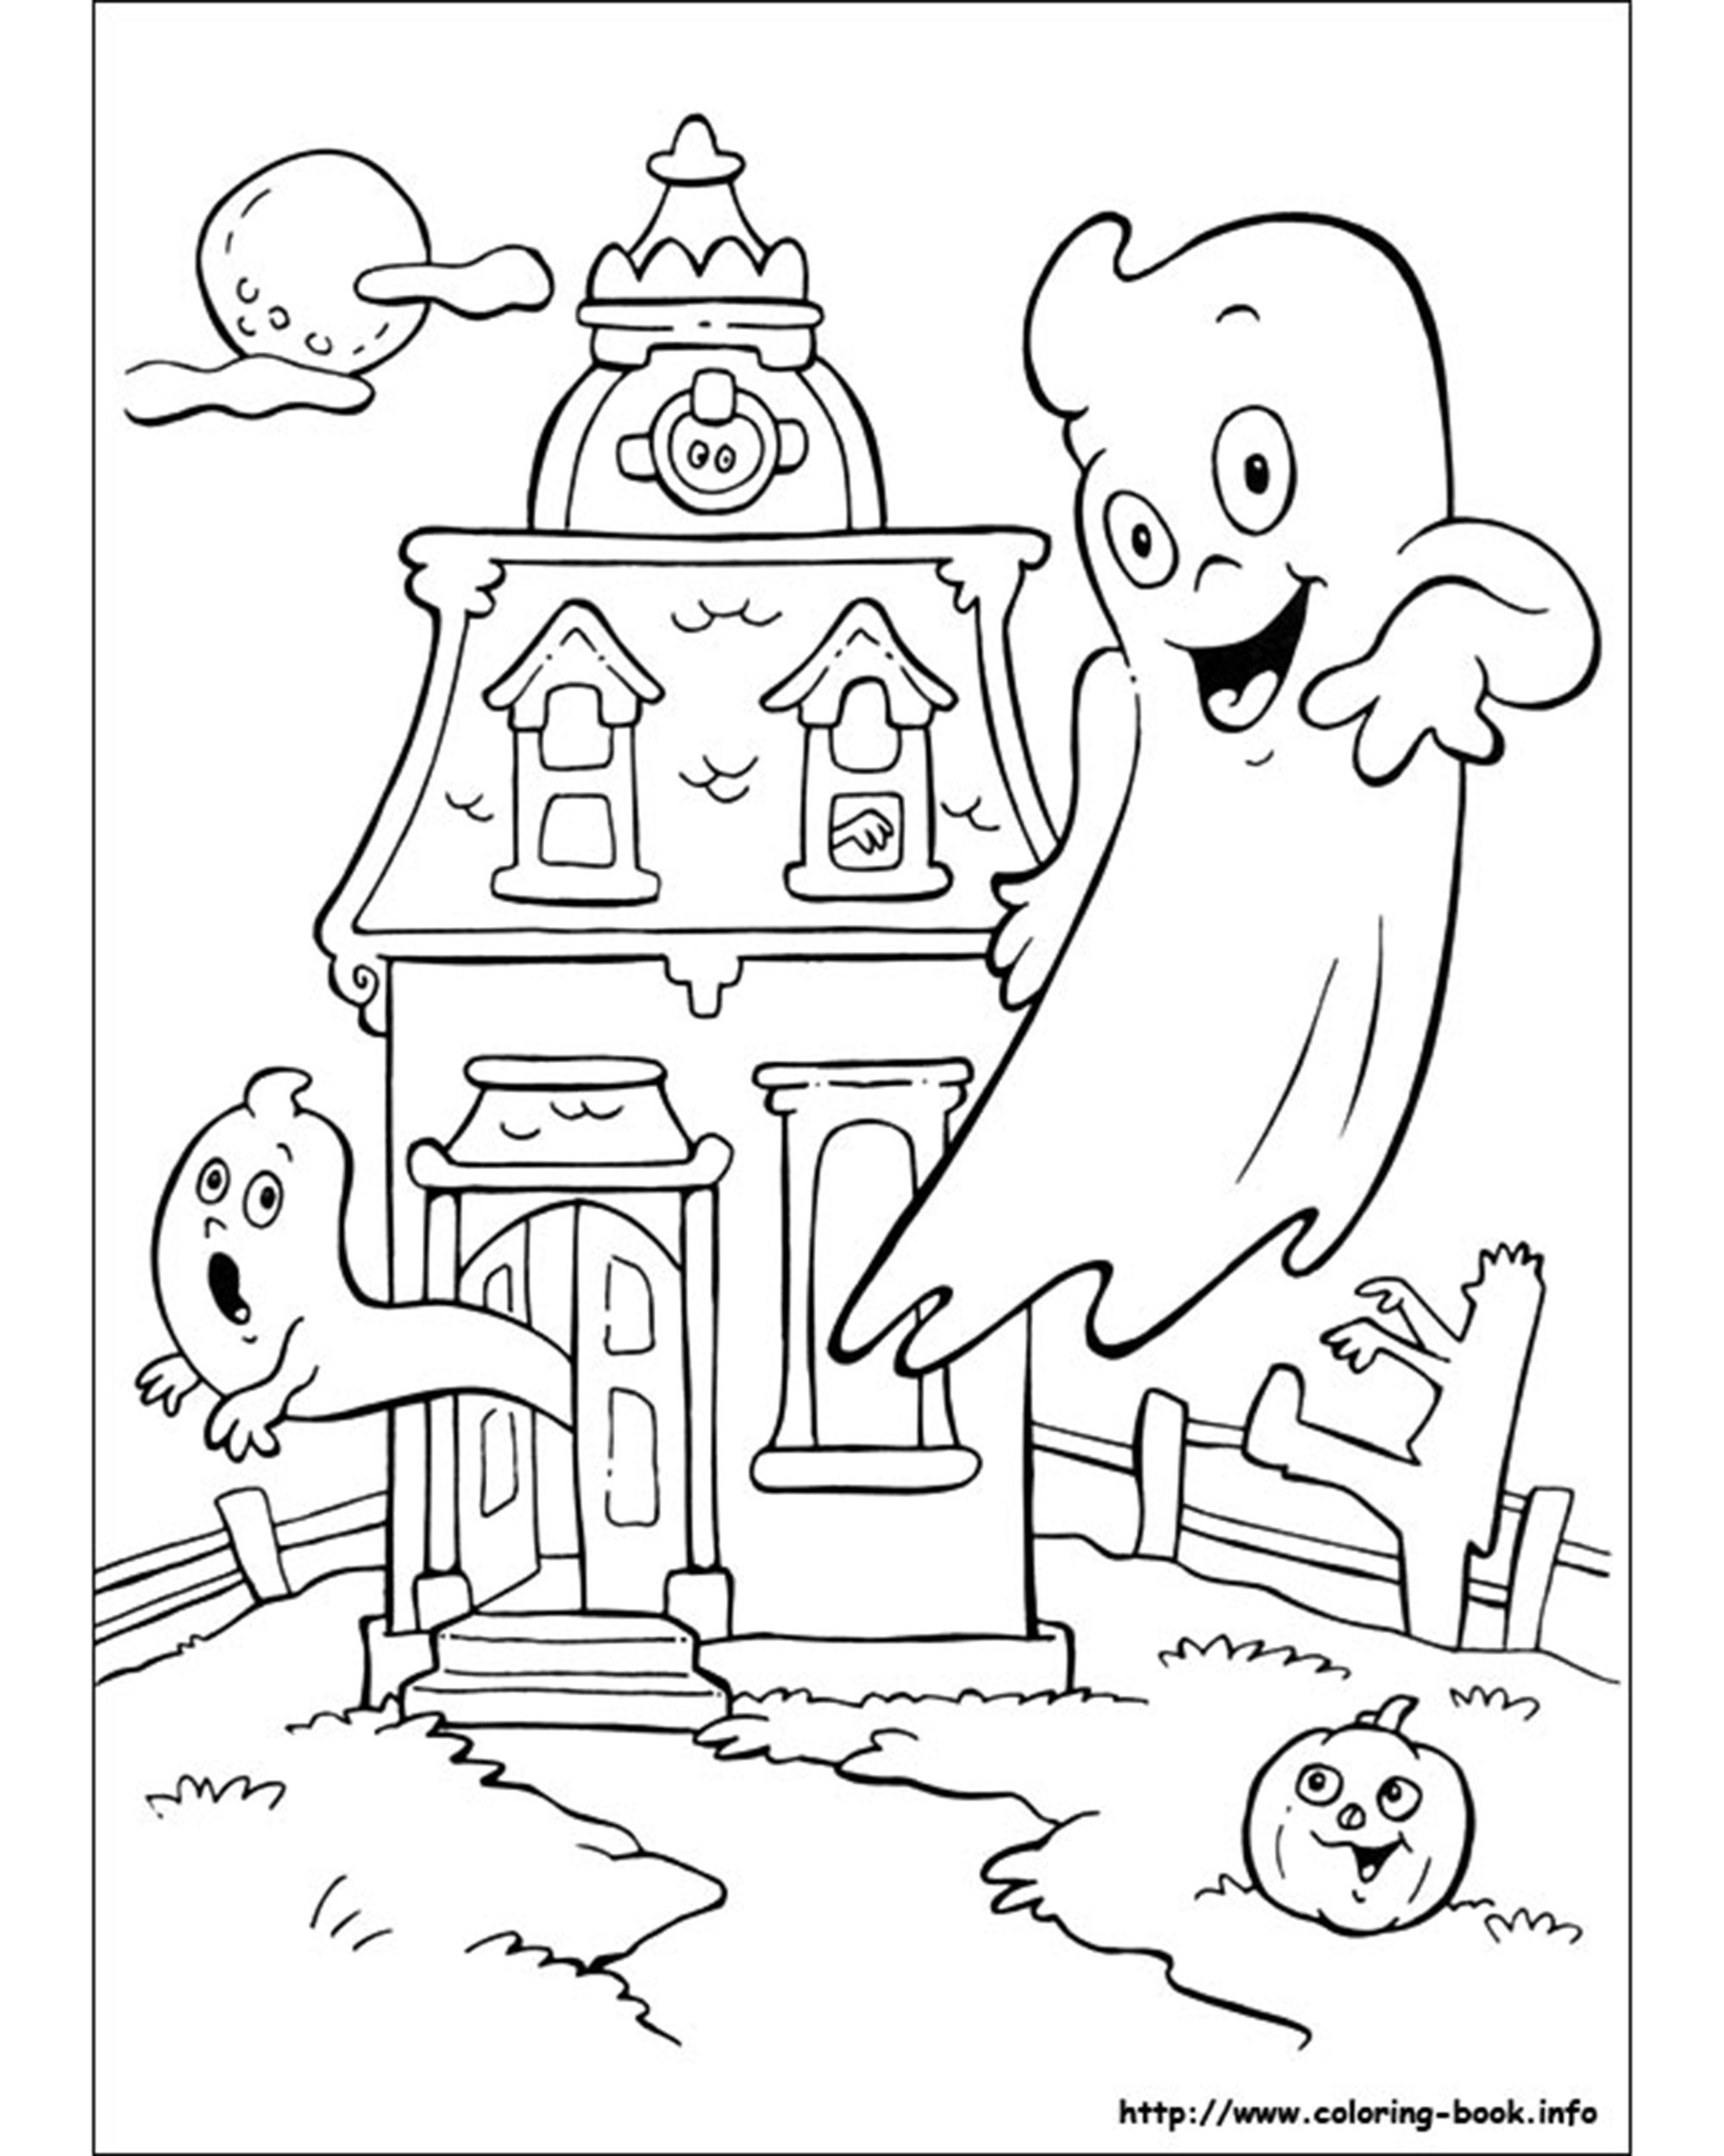 Halloween Coloring Pages Scarecrow With Of Scarecrows On A K B Info Free Coloring Pages F Halloween Coloring Book Halloween Coloring Pages Halloween Coloring